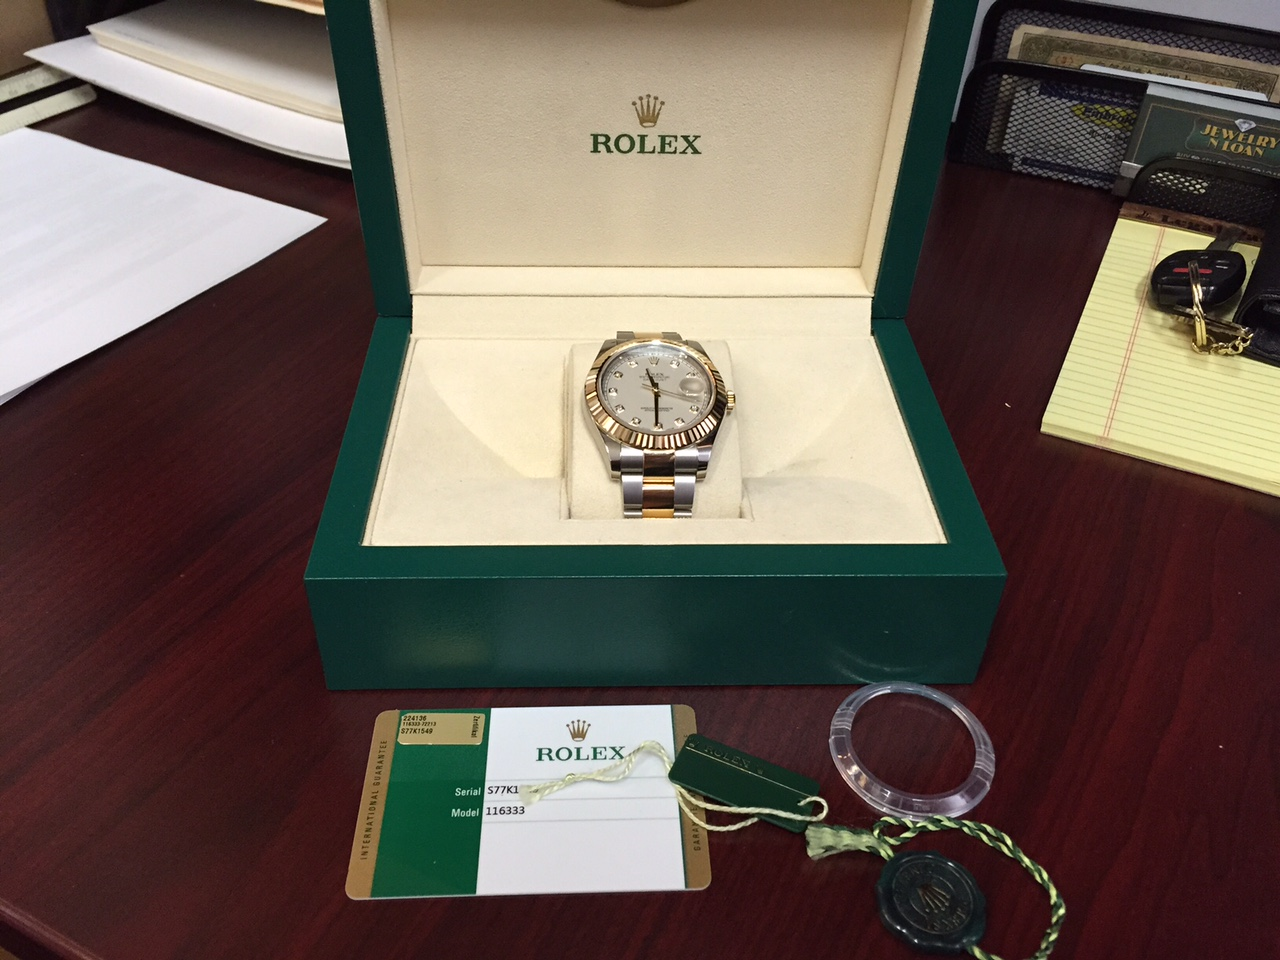 Rolex Two-Tone Datejust II - $10,500